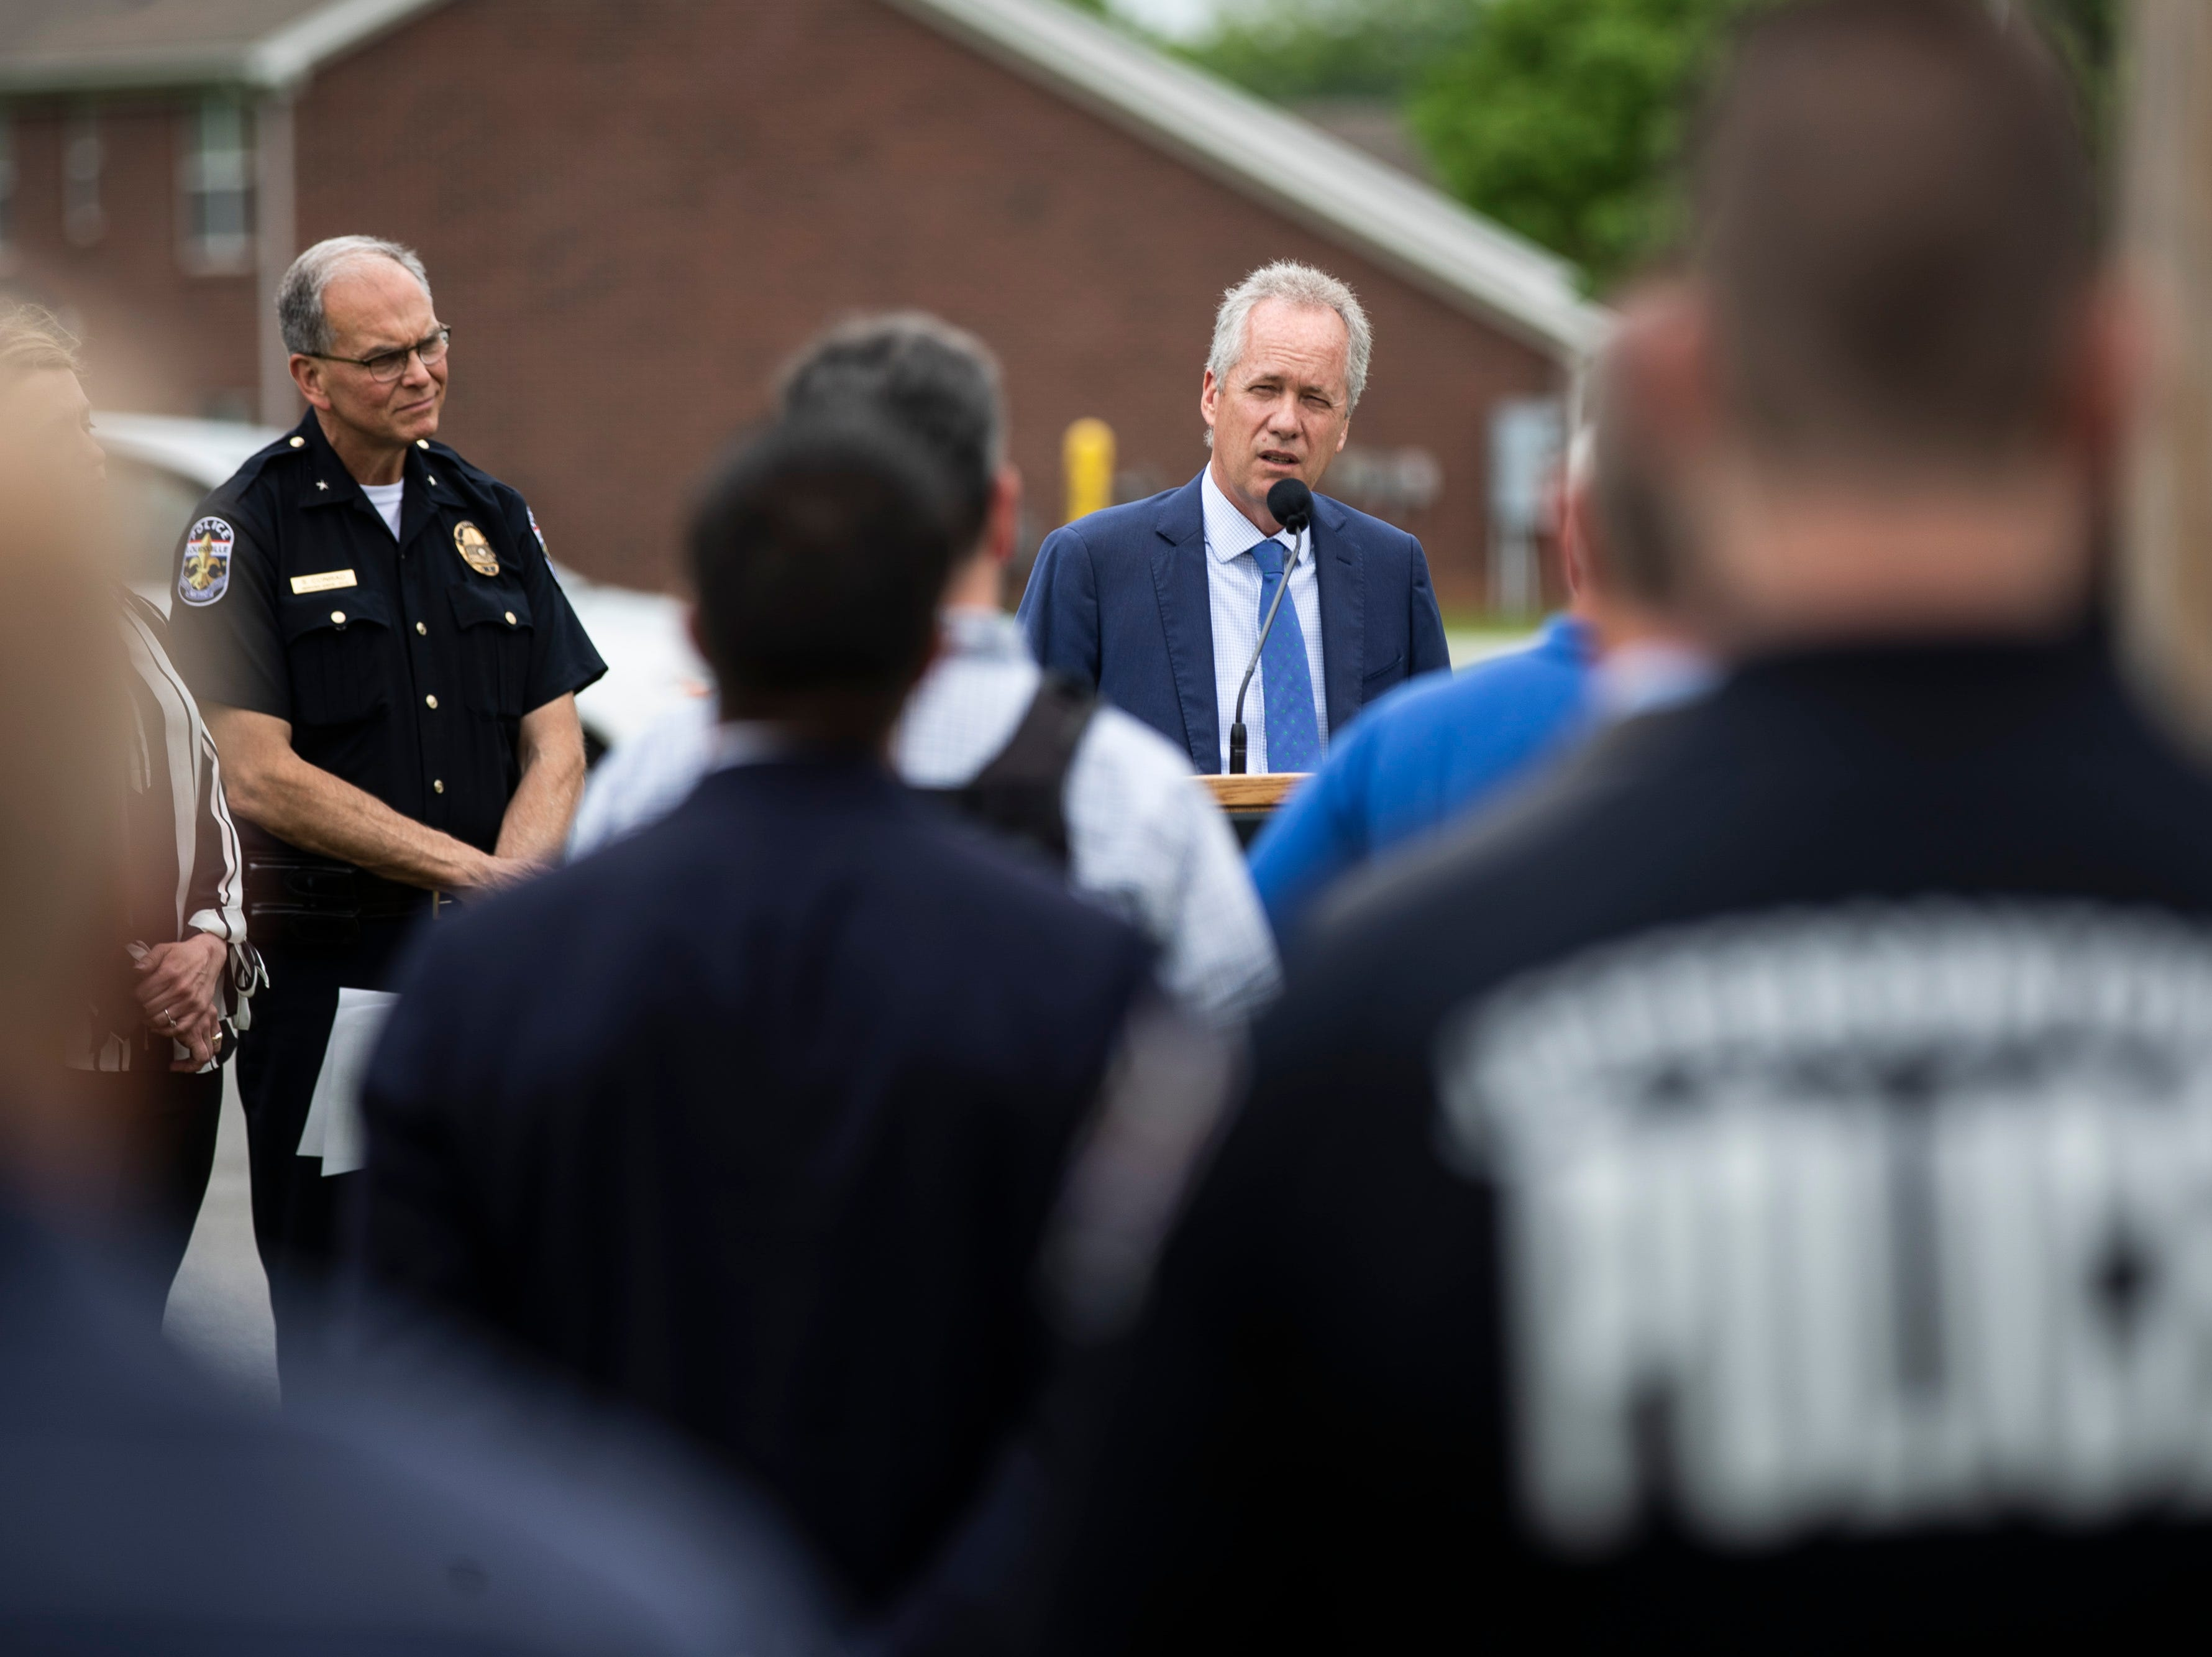 Mayor Greg Fischer speaks to the renaming of the corner of Stony Brook Drive and Six Mile Lane in Jeffersontown to Peter Grignon Way, in honor of the fallen officer shot during a hit and run stop in 2005. May 9, 2019